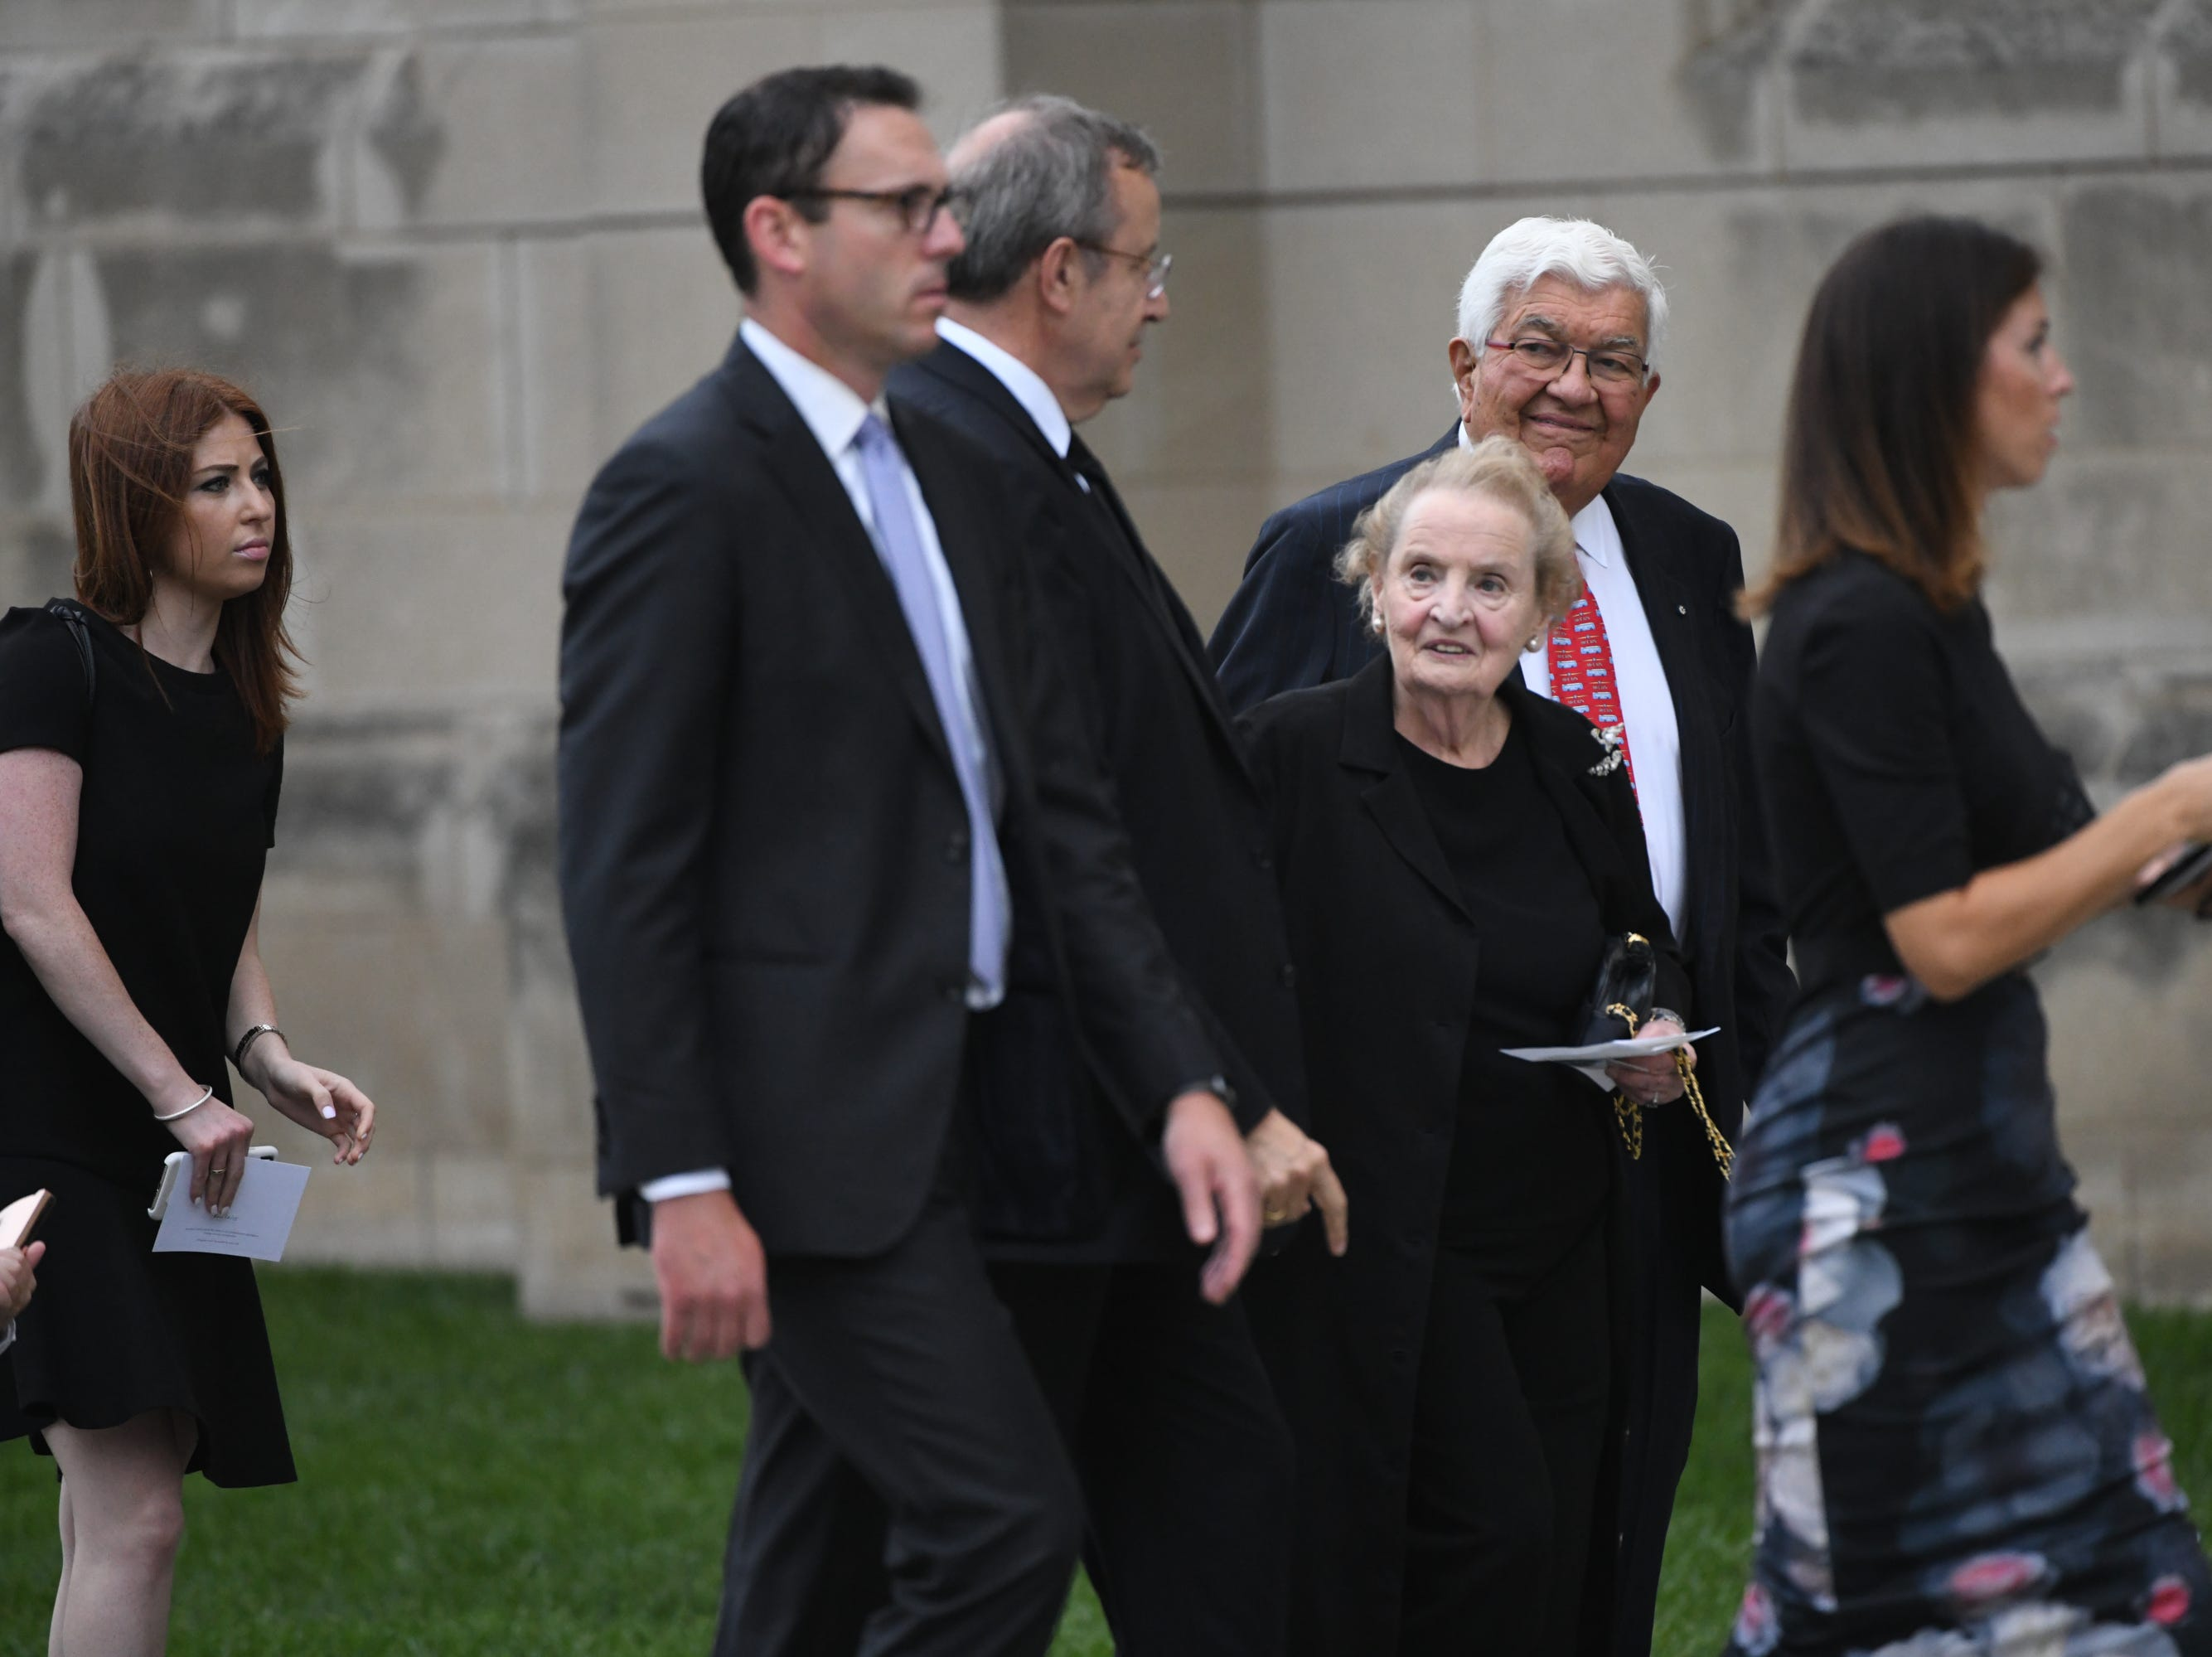 Madeleine Albright approaches the National Cathedral in Washington for a memorial service for John McCain on Sept. 1, 2018. Sen. McCain on Aug. 25.